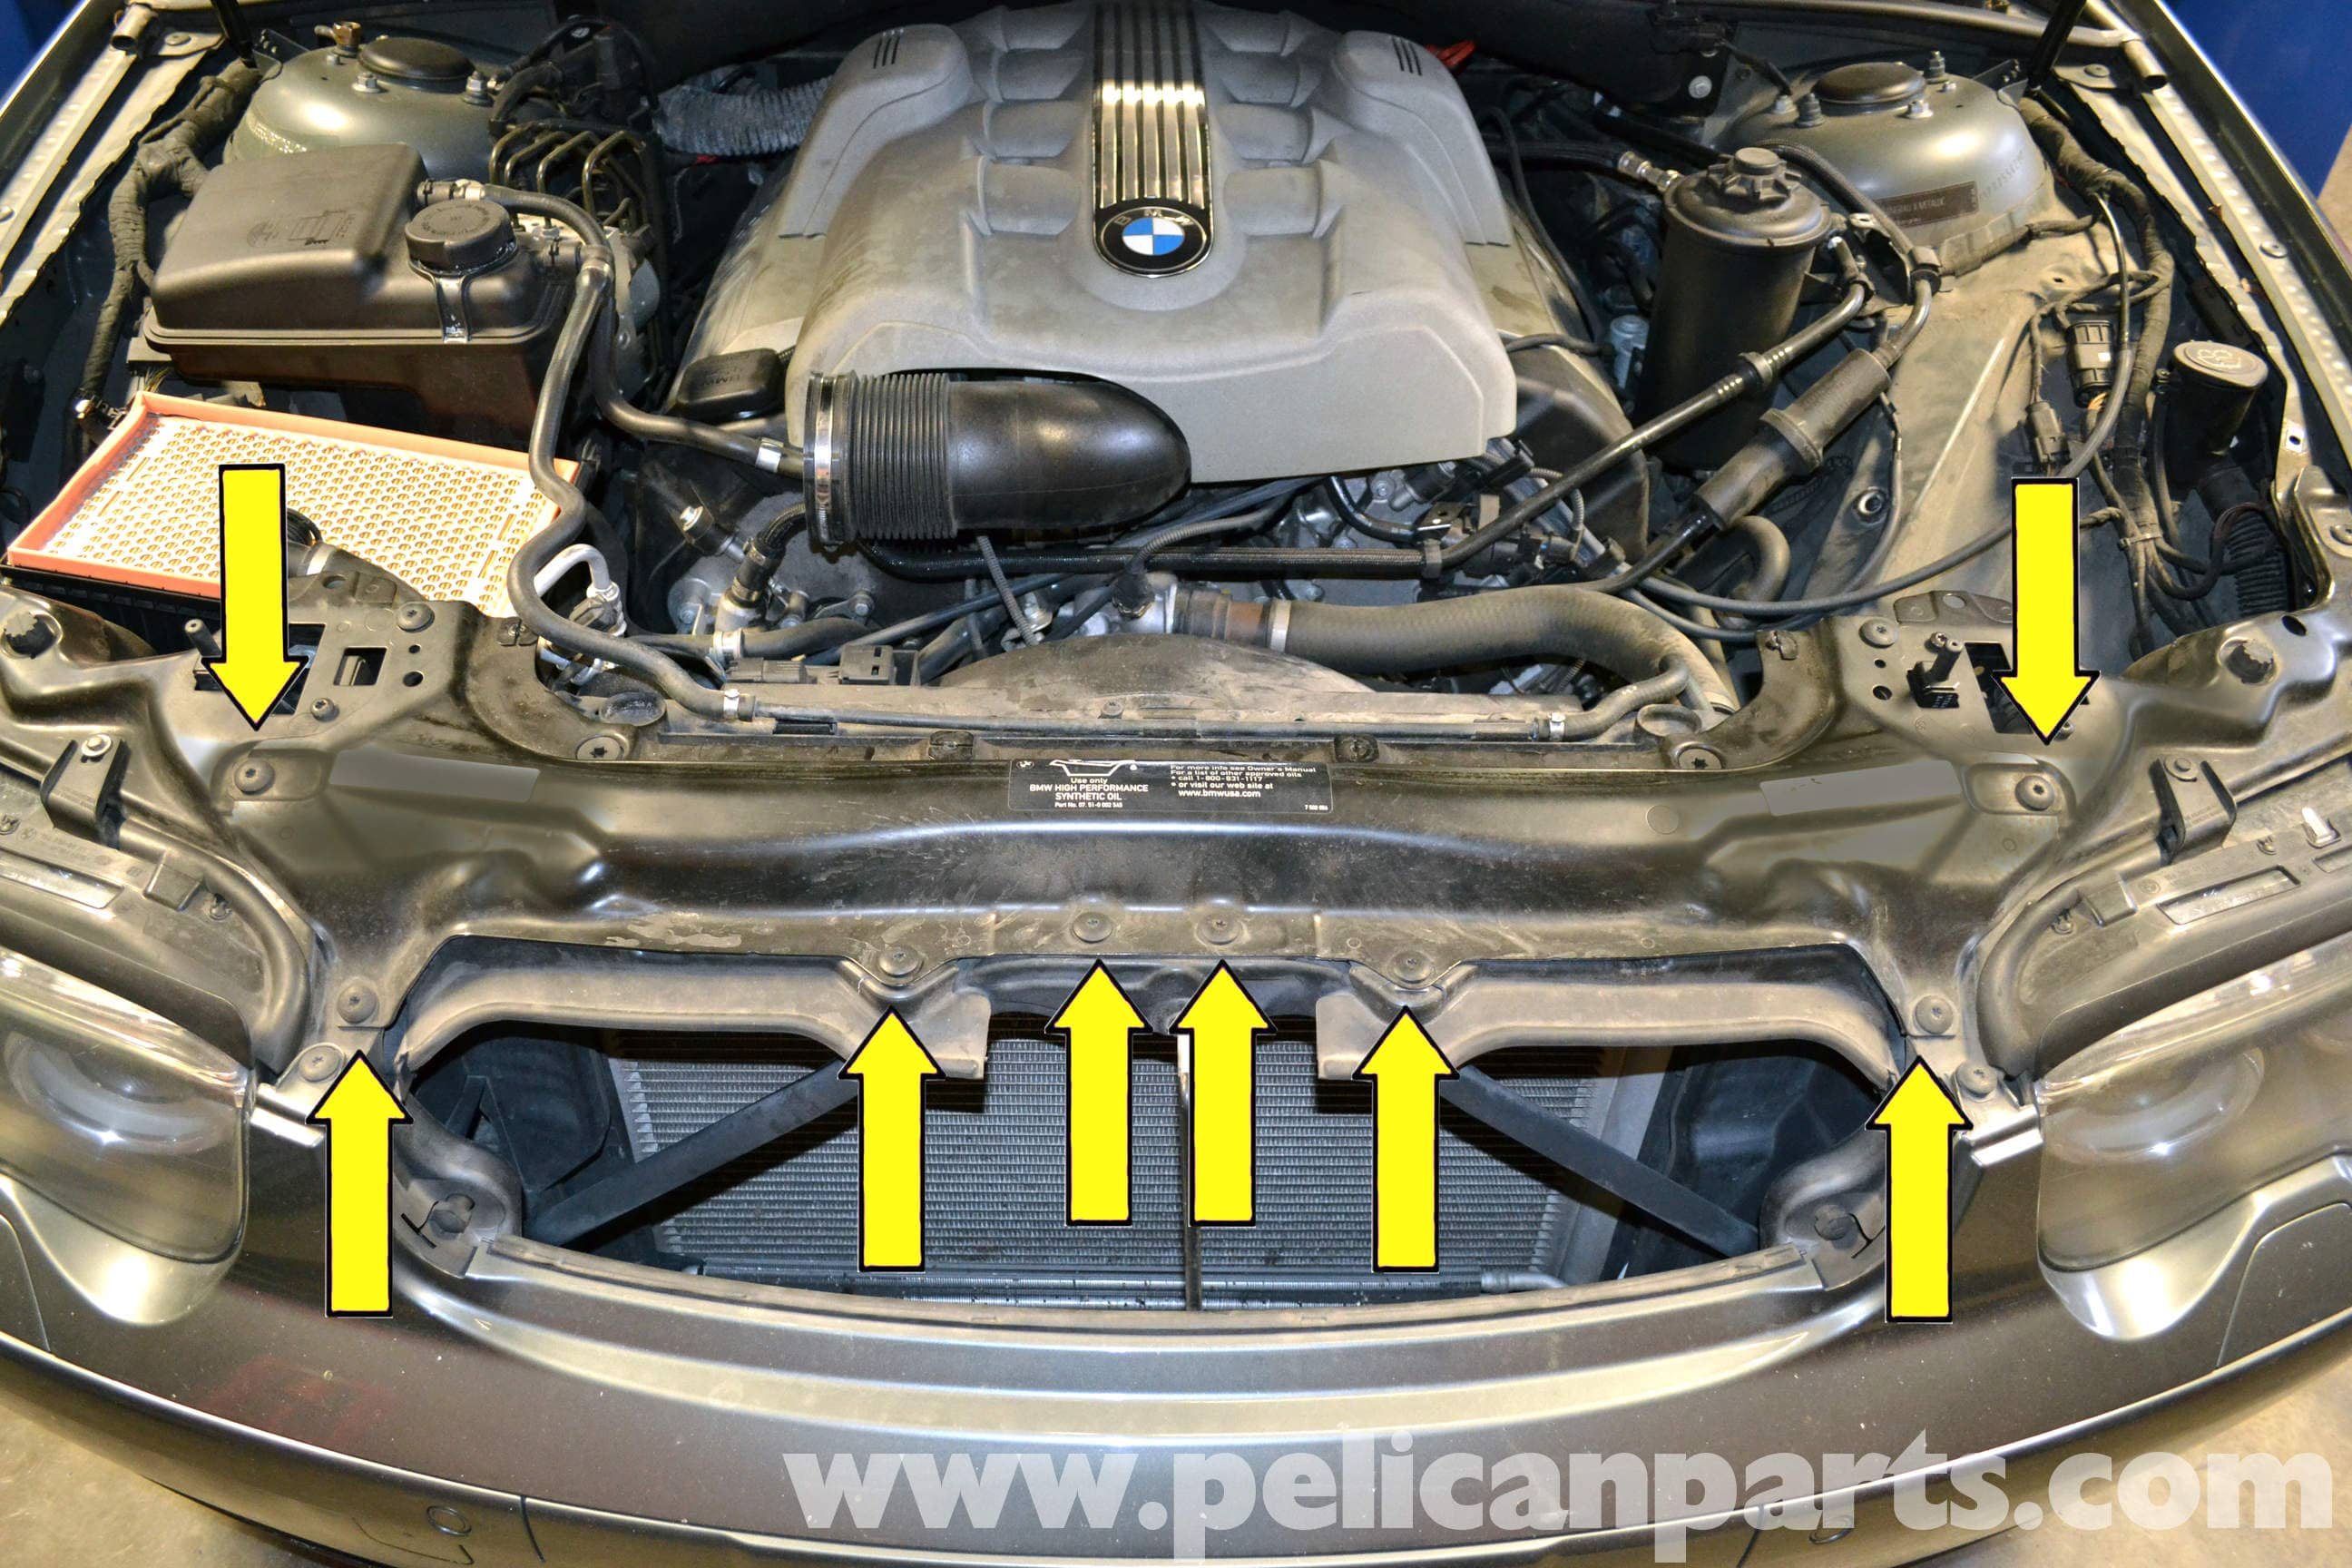 2007 bmw 328i engine compartment diagram 2007 bmw e60 engine bay diagram bmw wiring diagrams on 2007 bmw 328i engine compartment diagram